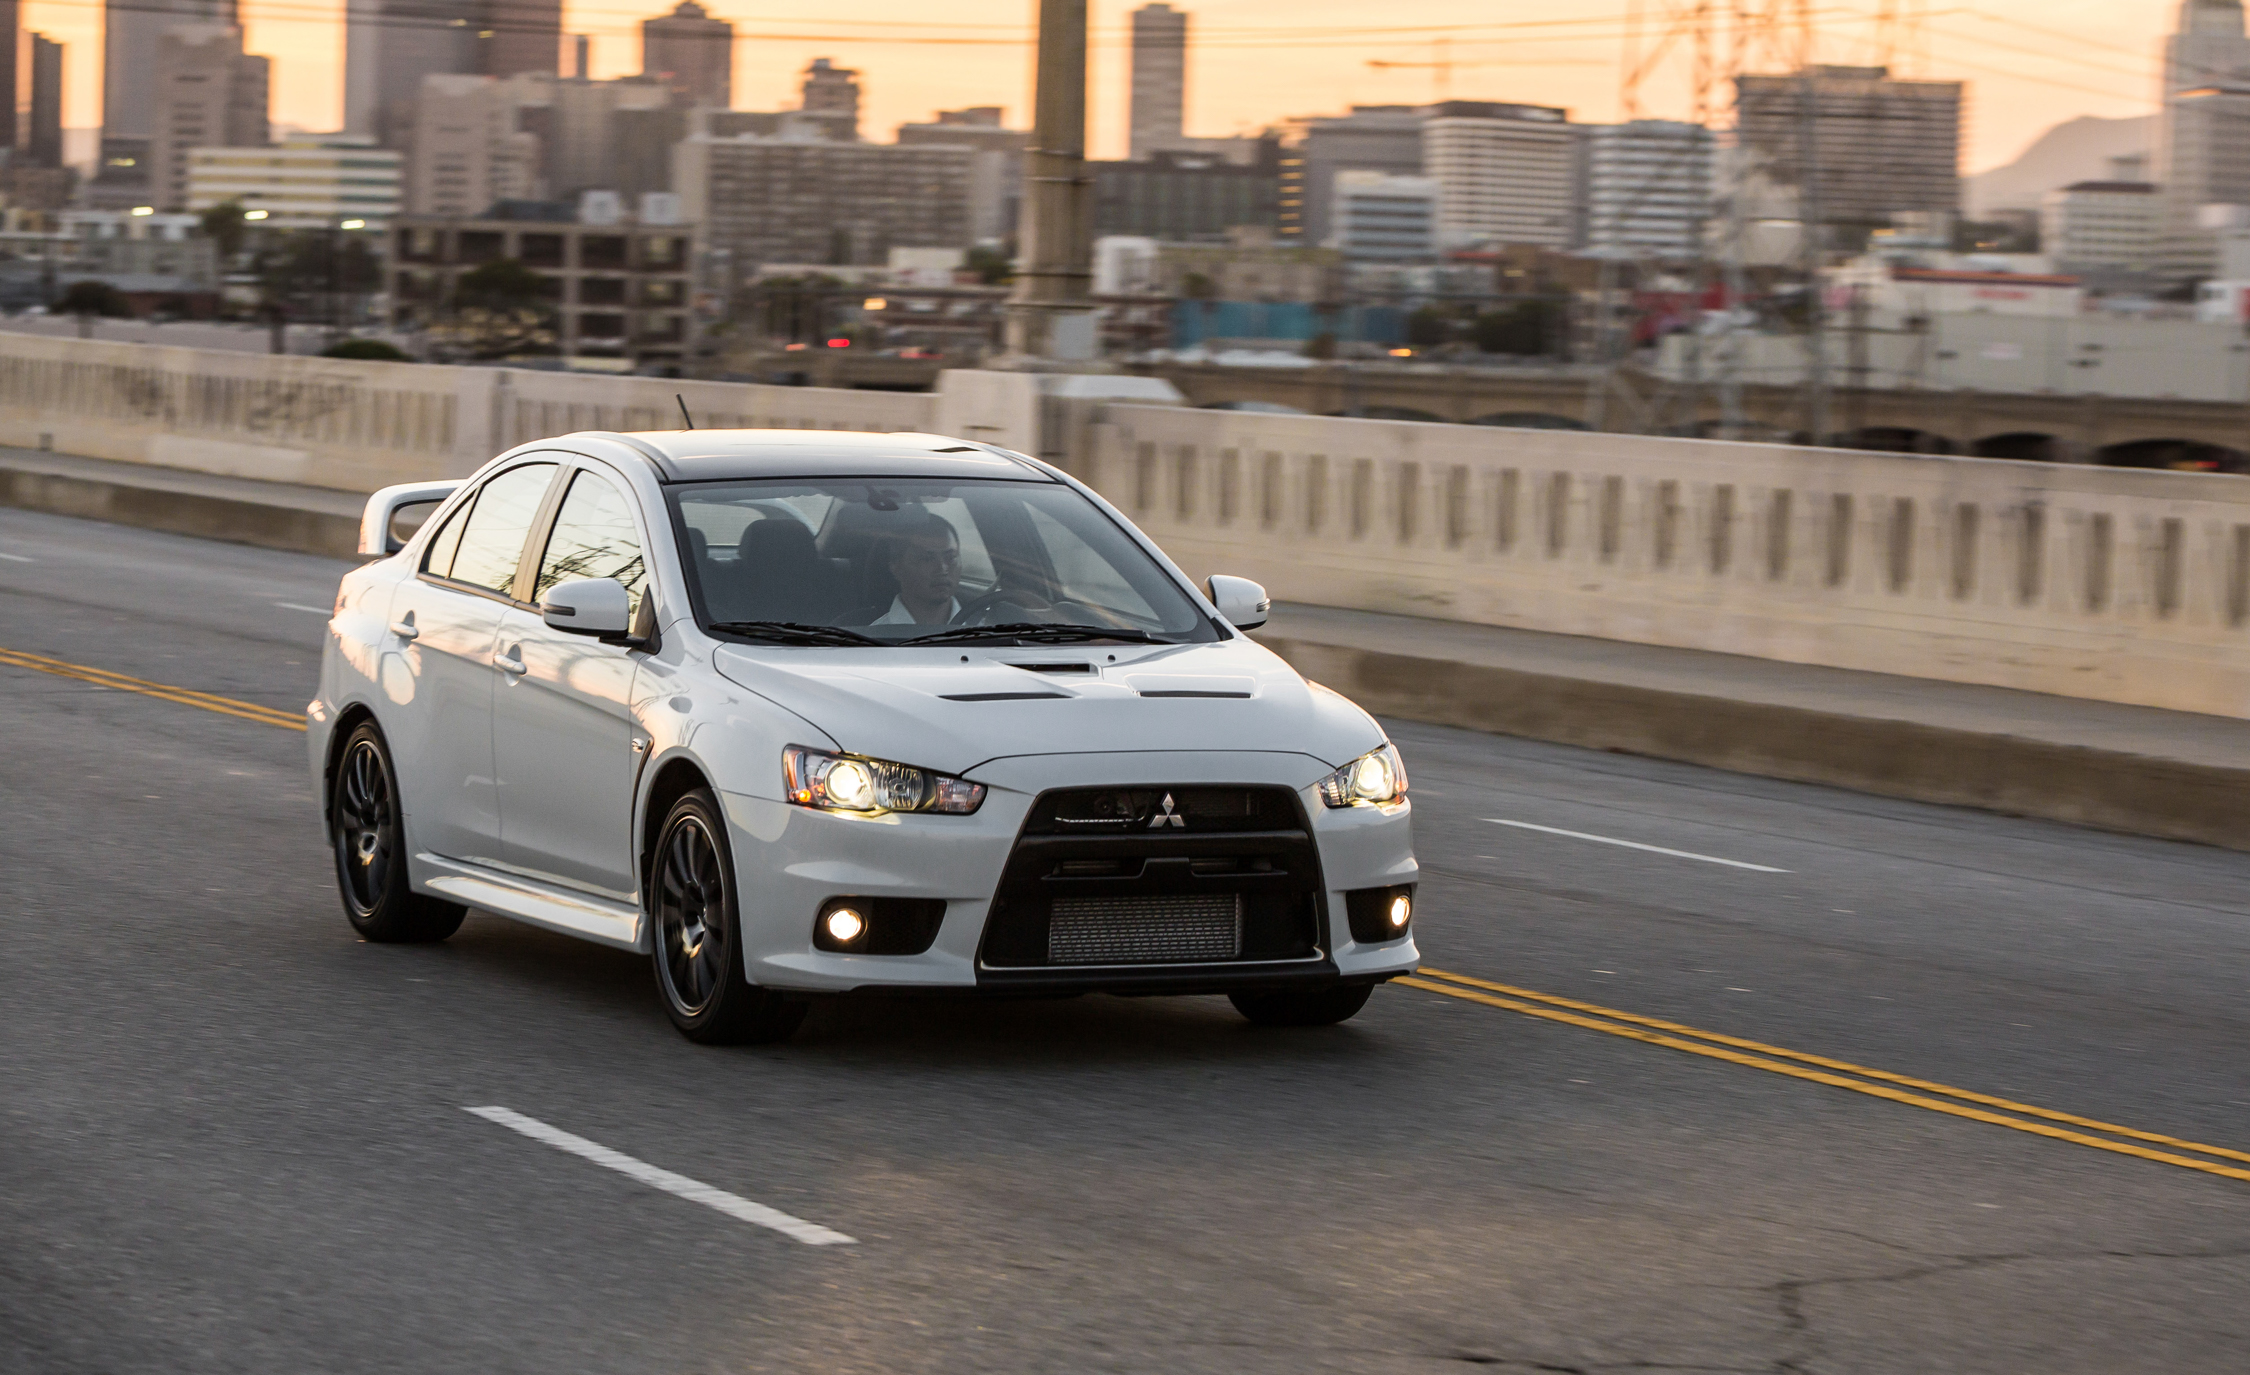 2015 Mitsubishi Lancer Evolution Final Edition (Photo 14 of 15)